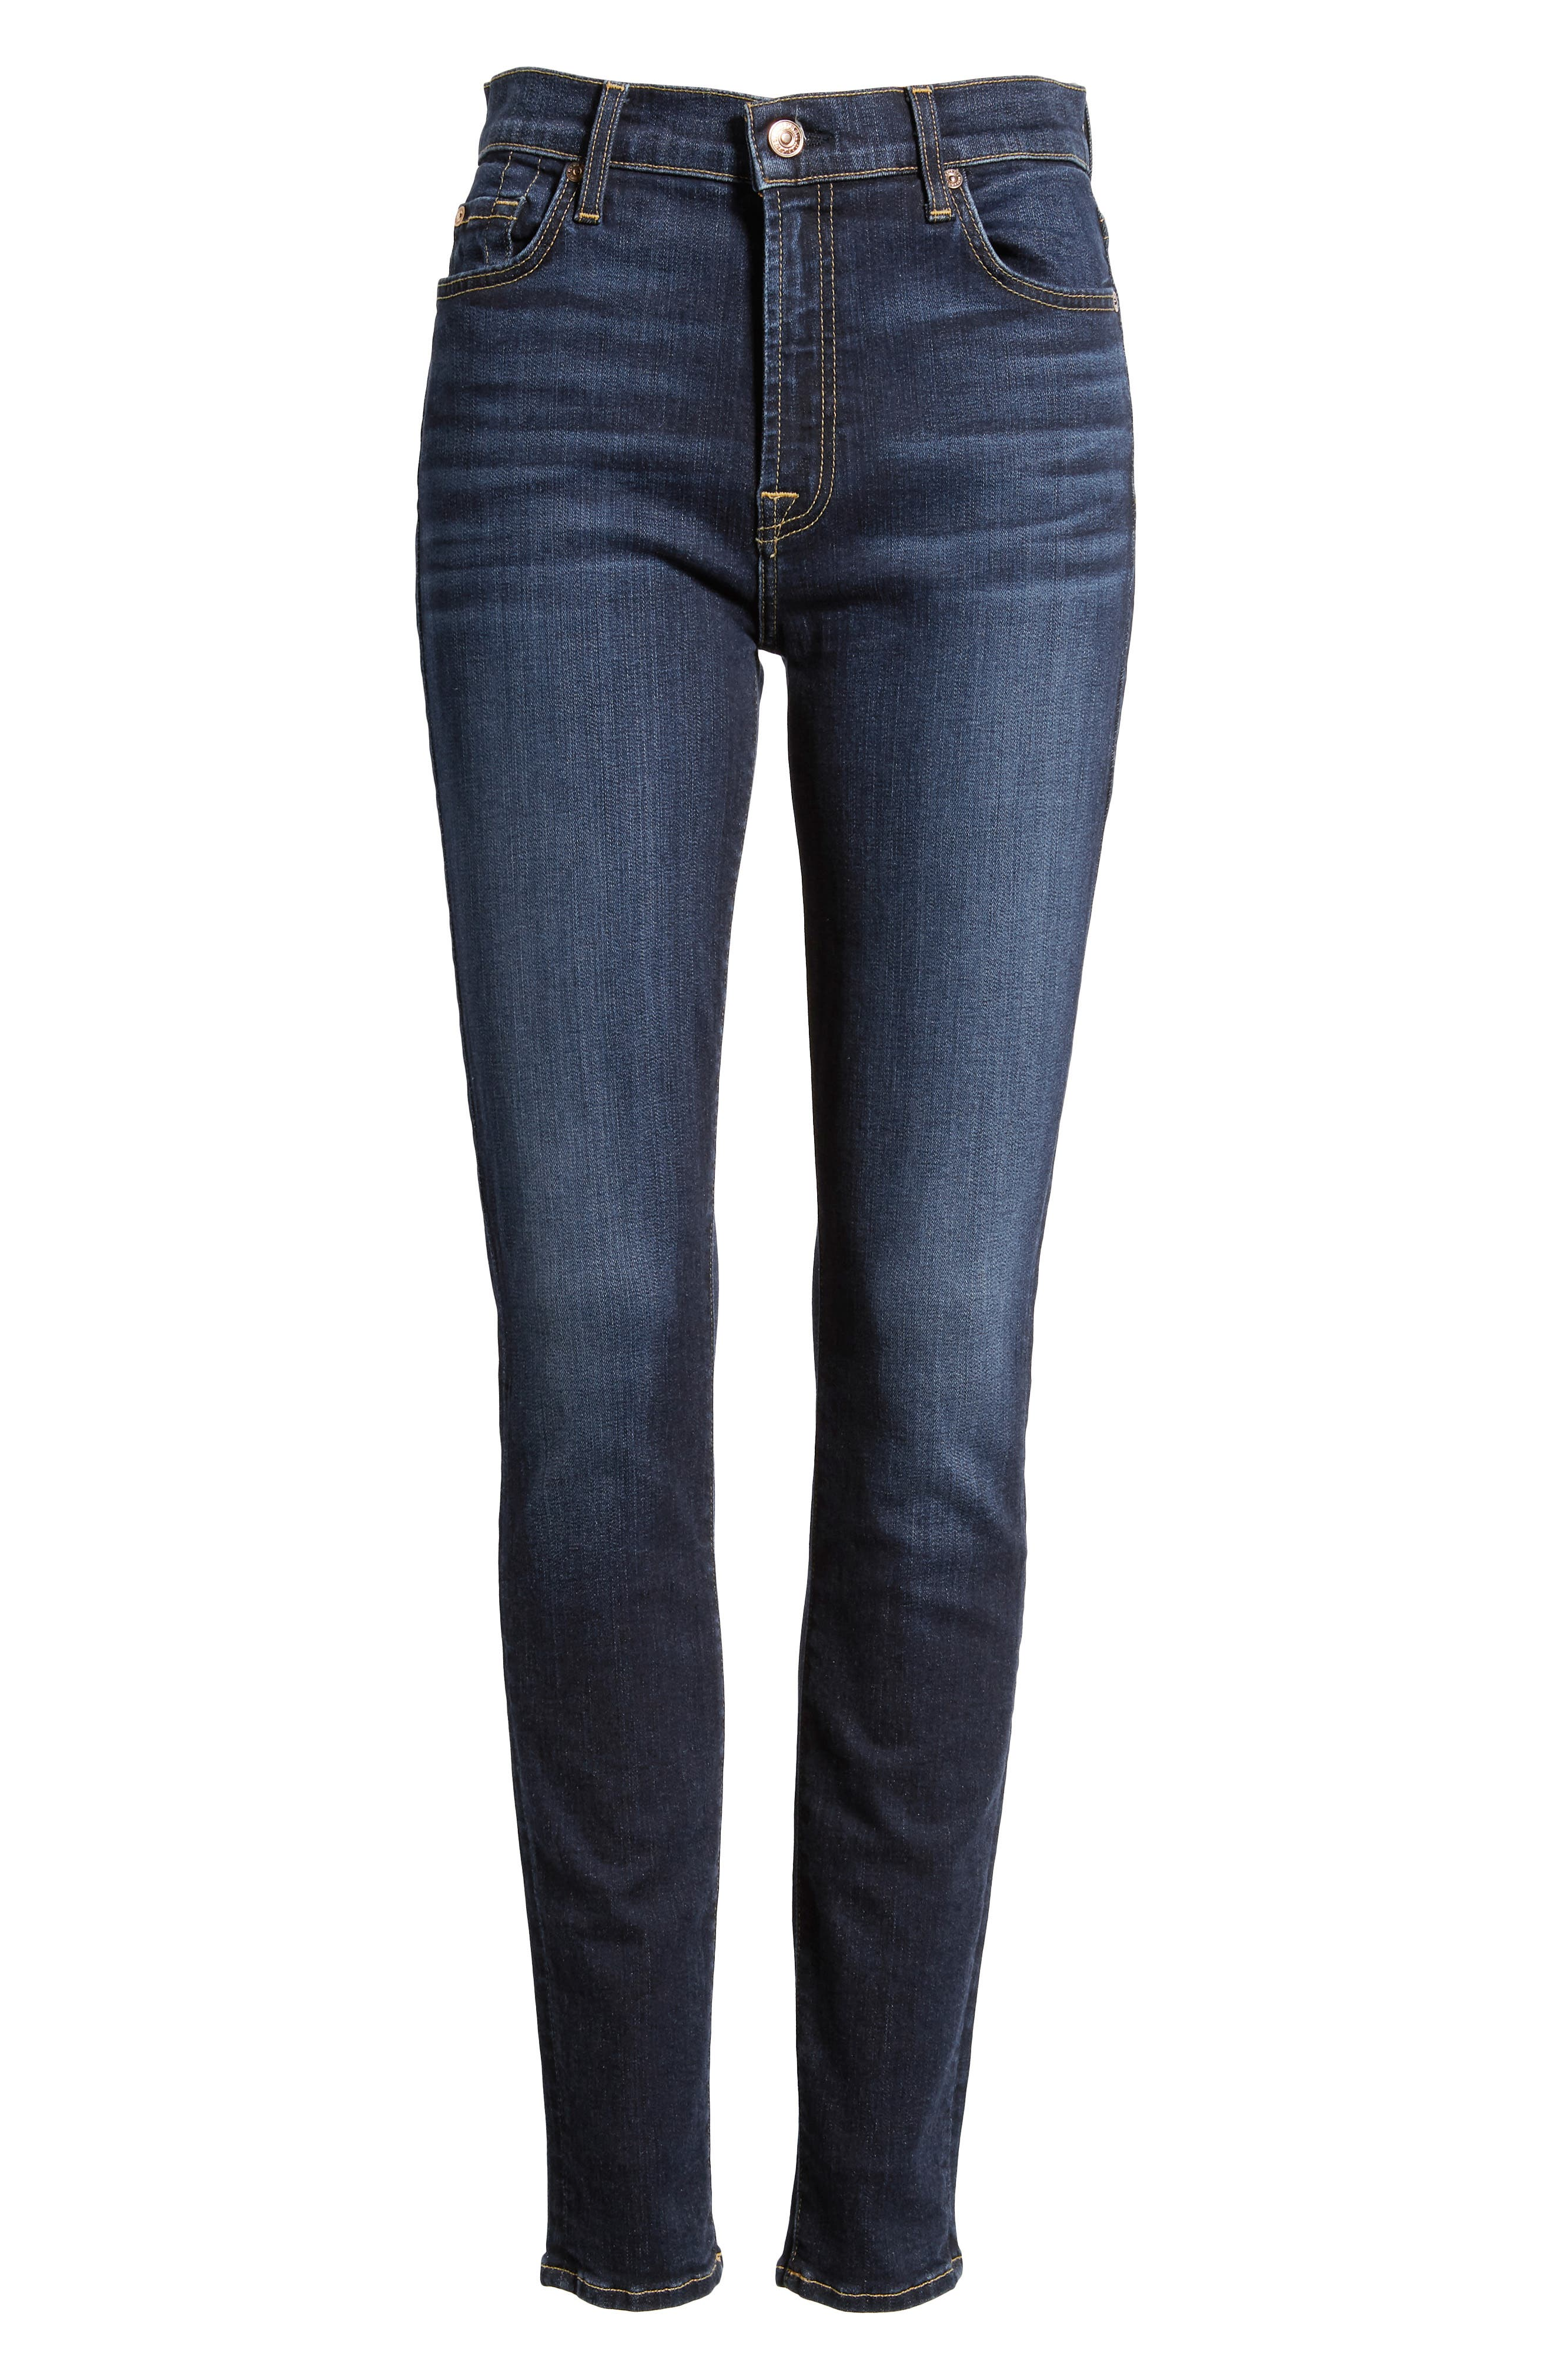 7 FOR ALL MANKIND<SUP>®</SUP>, The High Waist Skinny Jeans, Alternate thumbnail 7, color, AUTHENTIC FATE